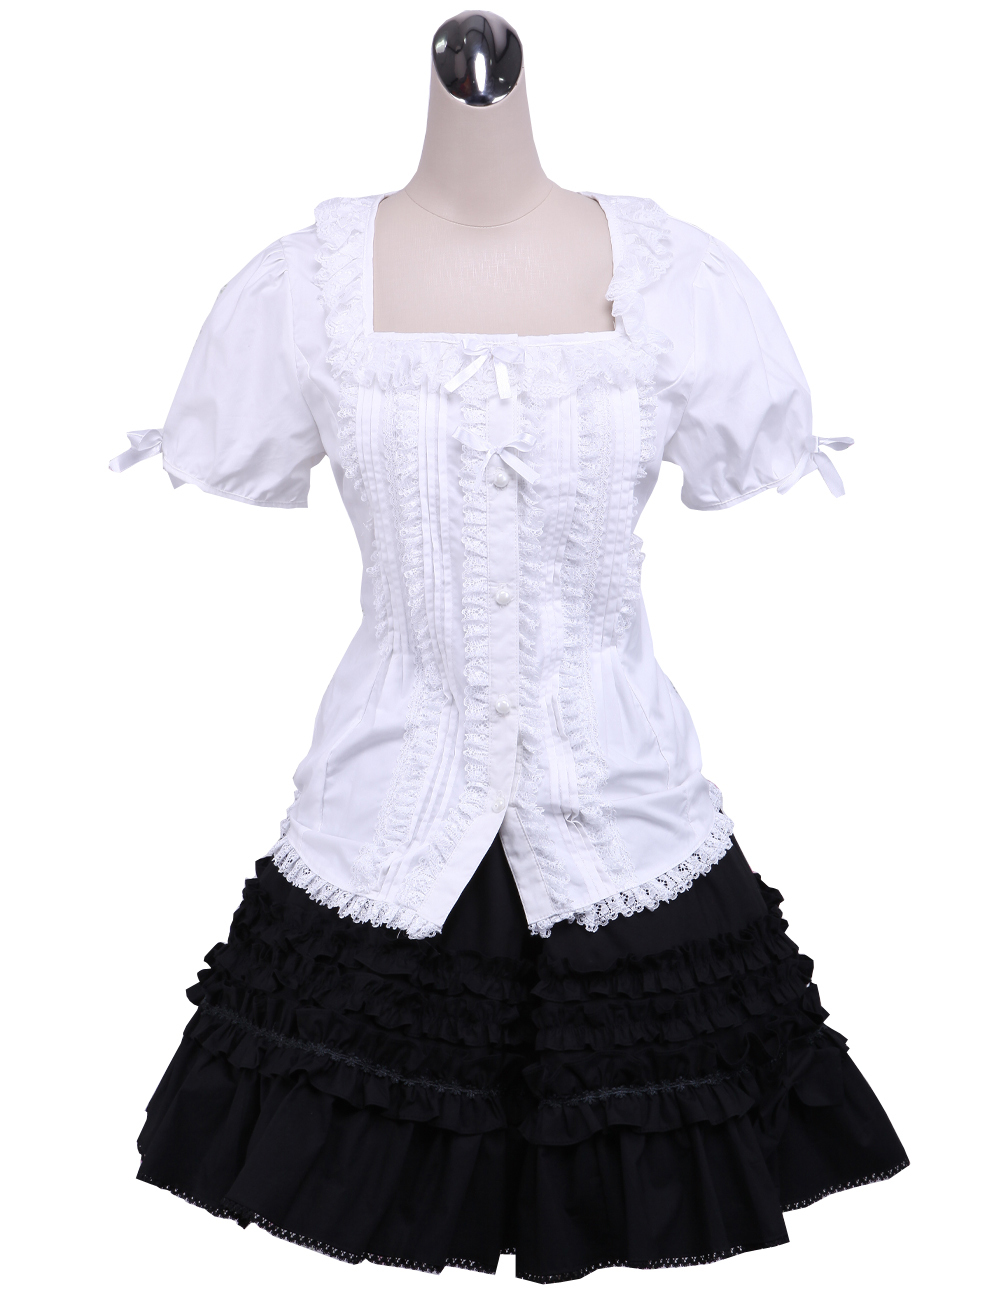 Primary image for ZeroMart White Cotton Lolita Puff Sleeve Blouse and Black Lace Classic Skirt